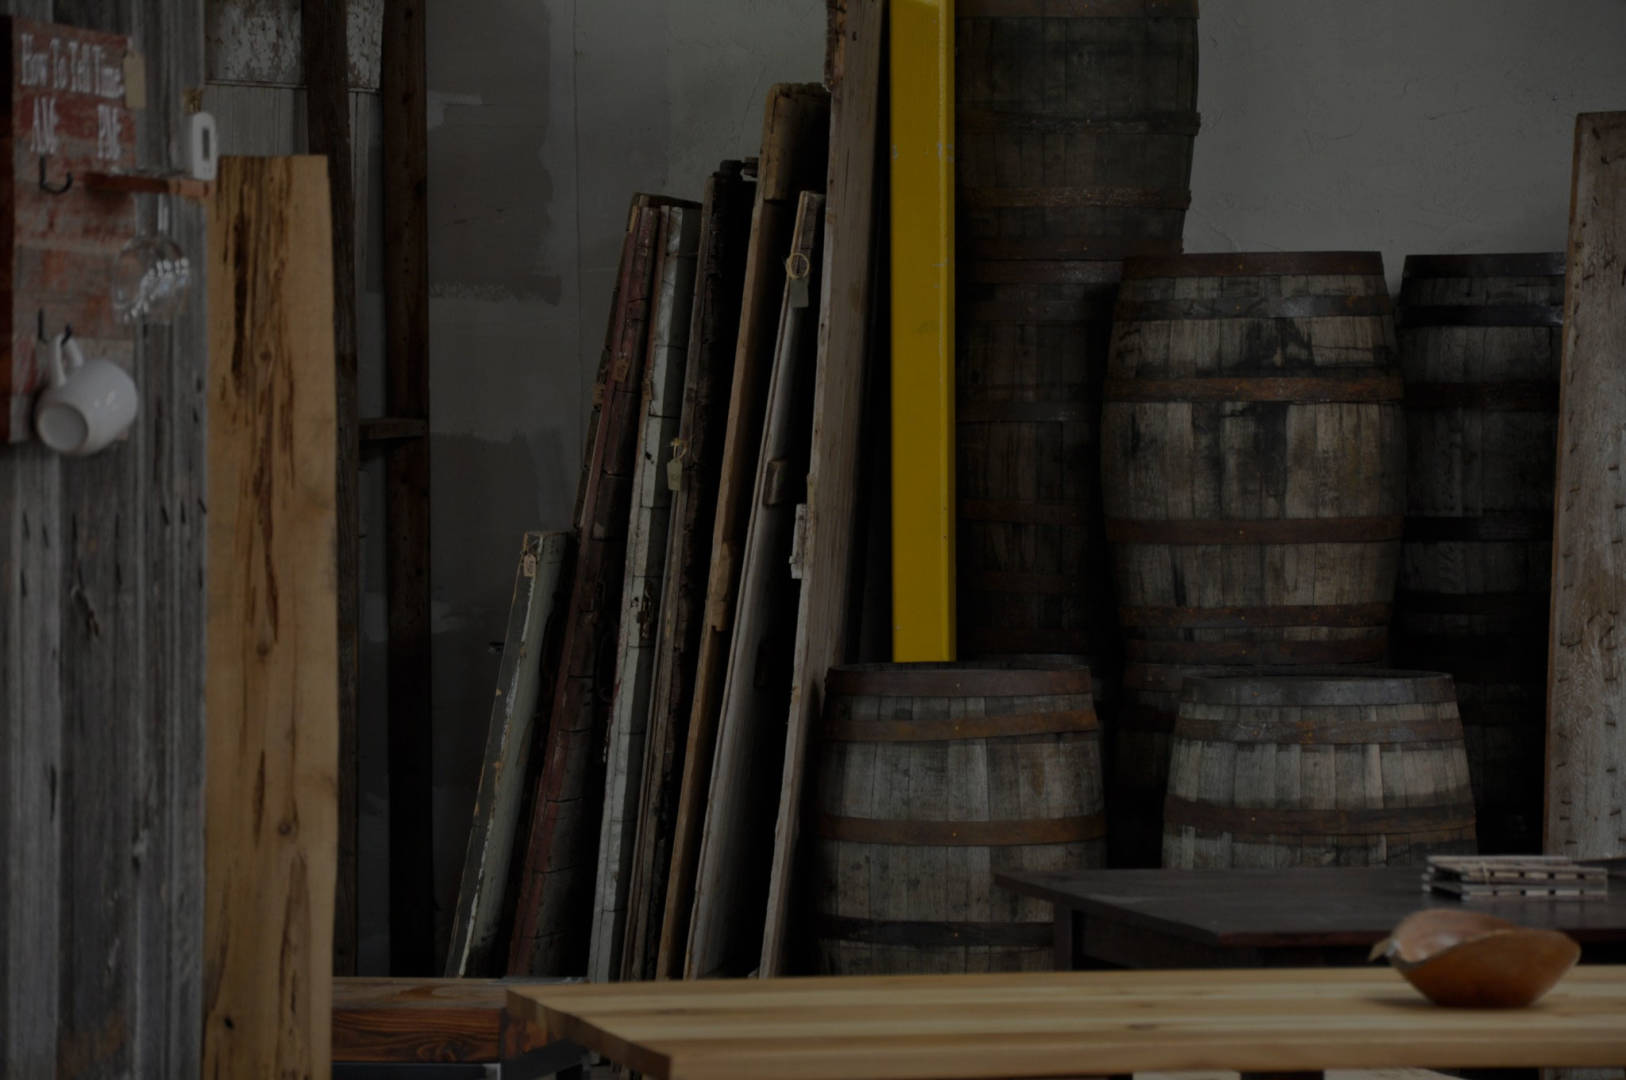 Backroom stocked with rustic barn wood for DIY reclaimed wood projects.